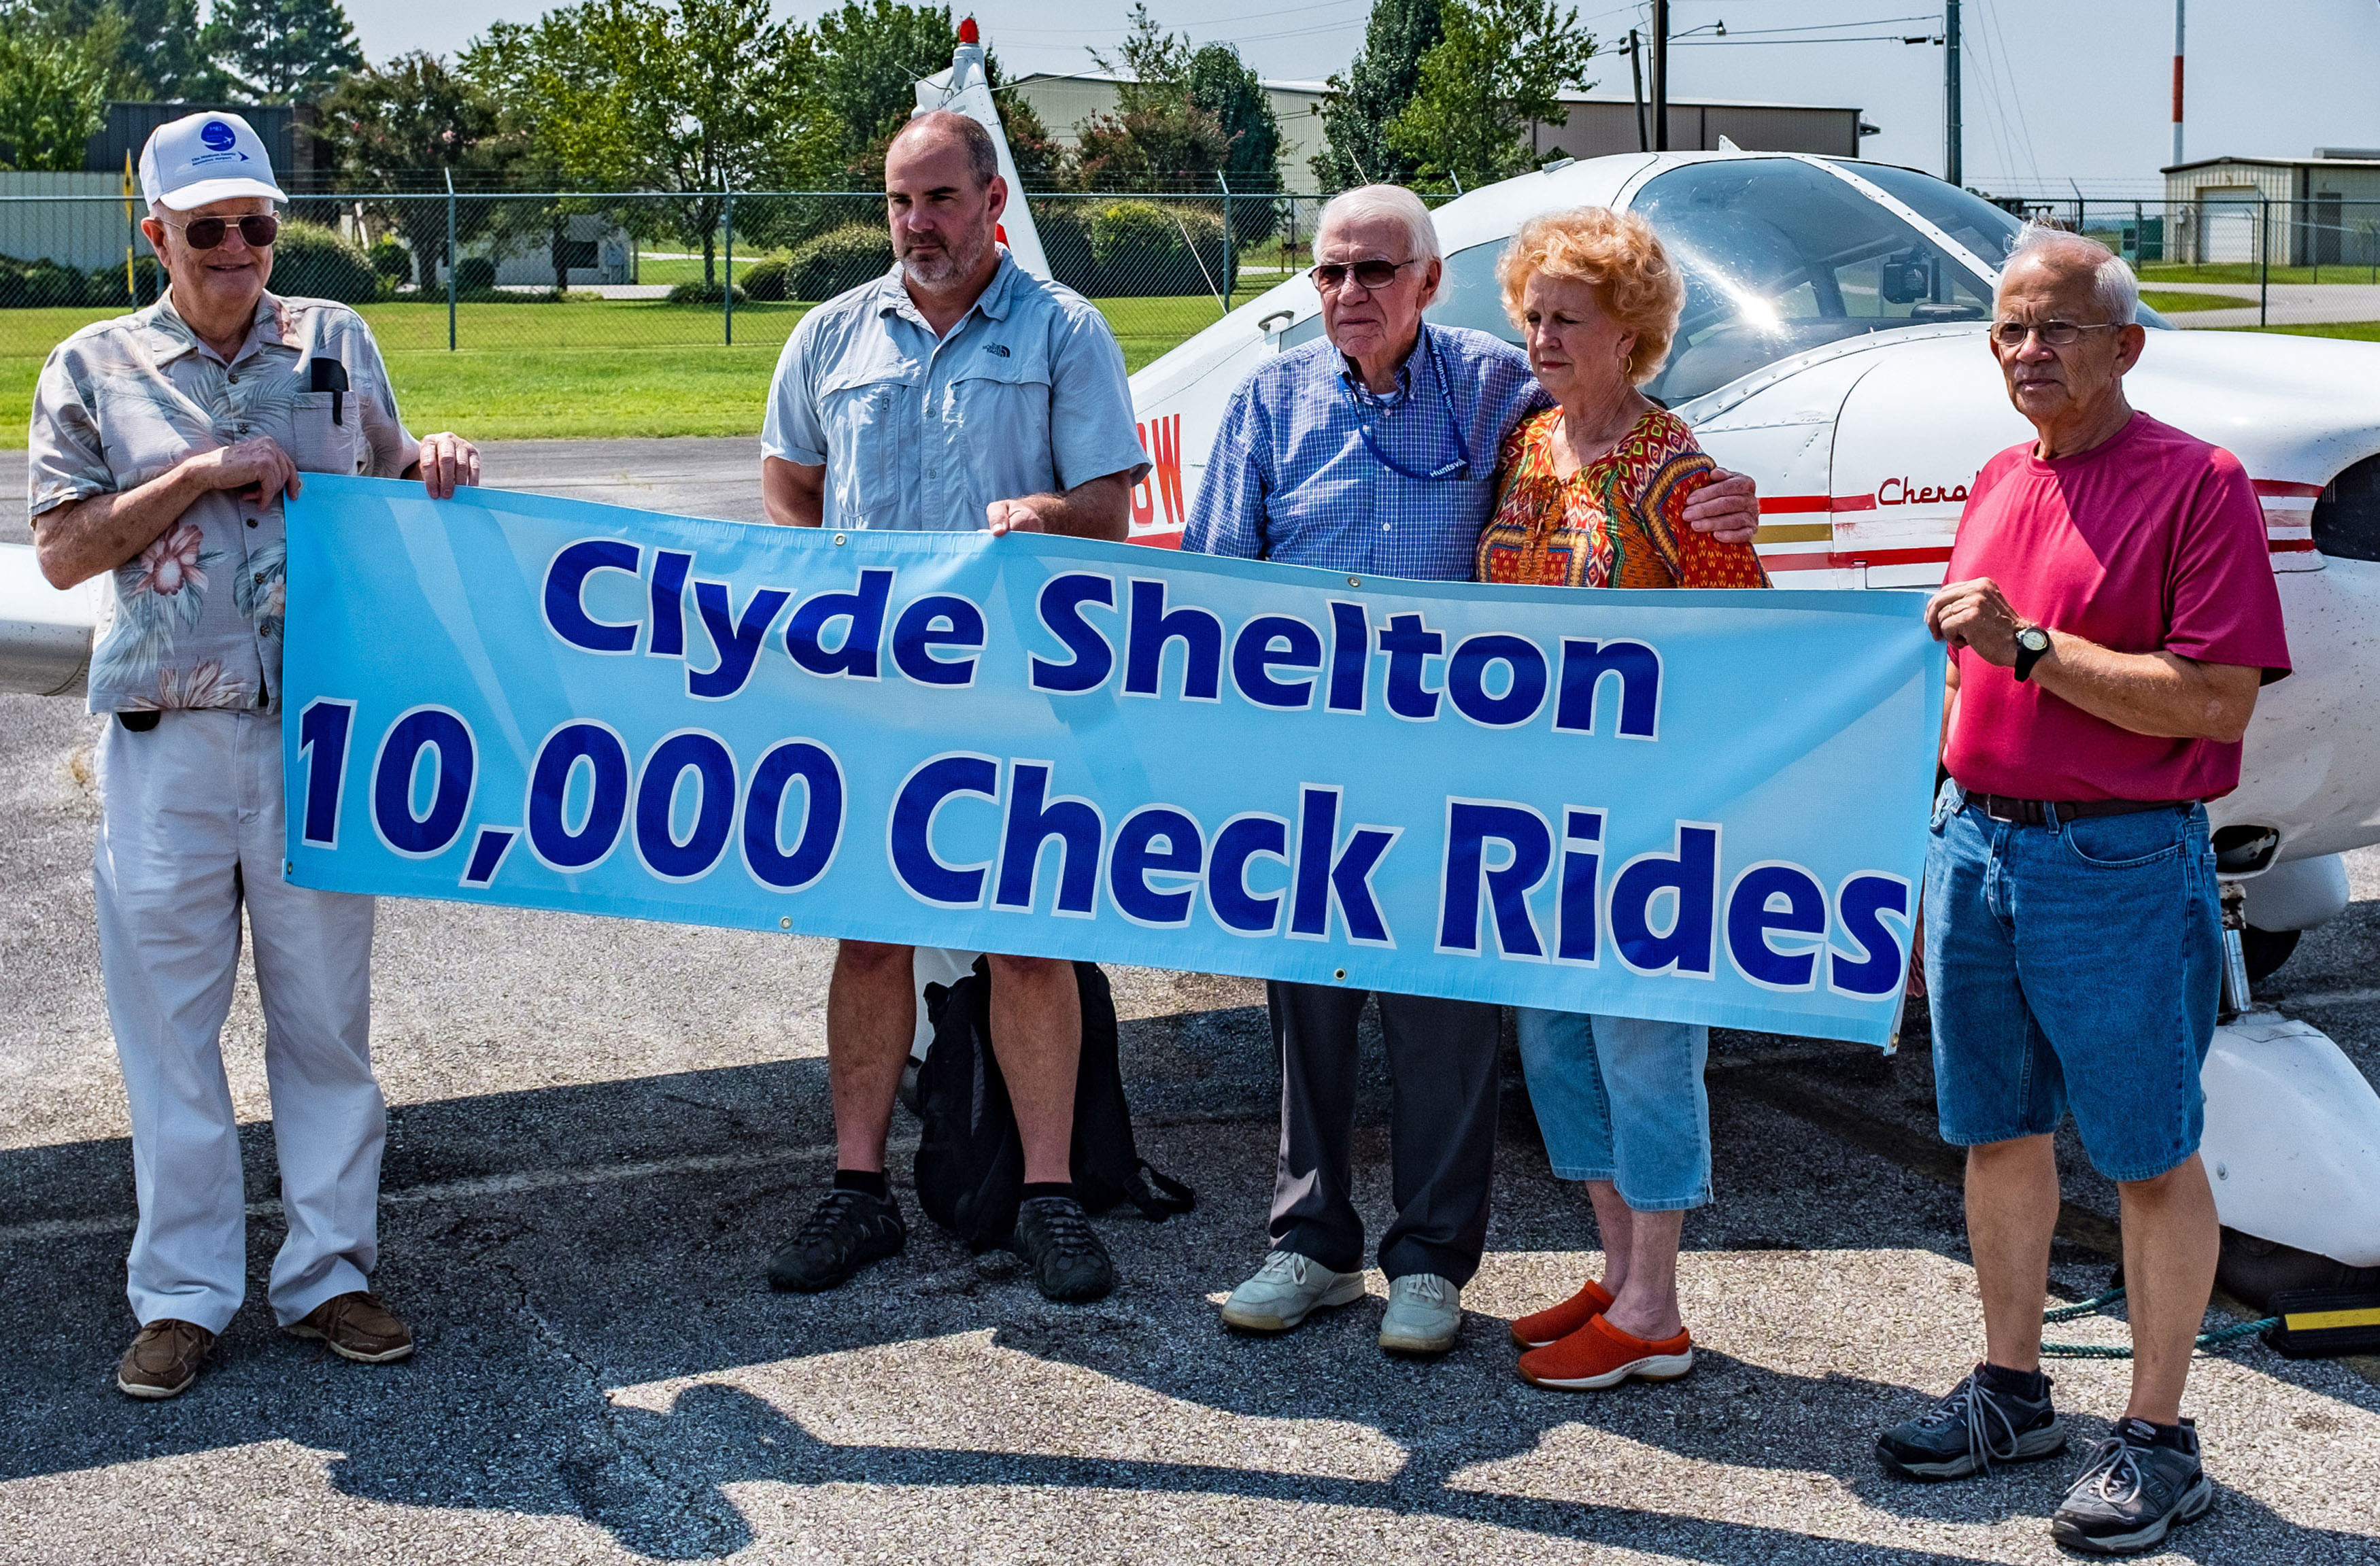 Clyde Shelton celebrates administering his 10,000th flight exam. Photo courtesy of Marty Sellers/sellersphoto.com.